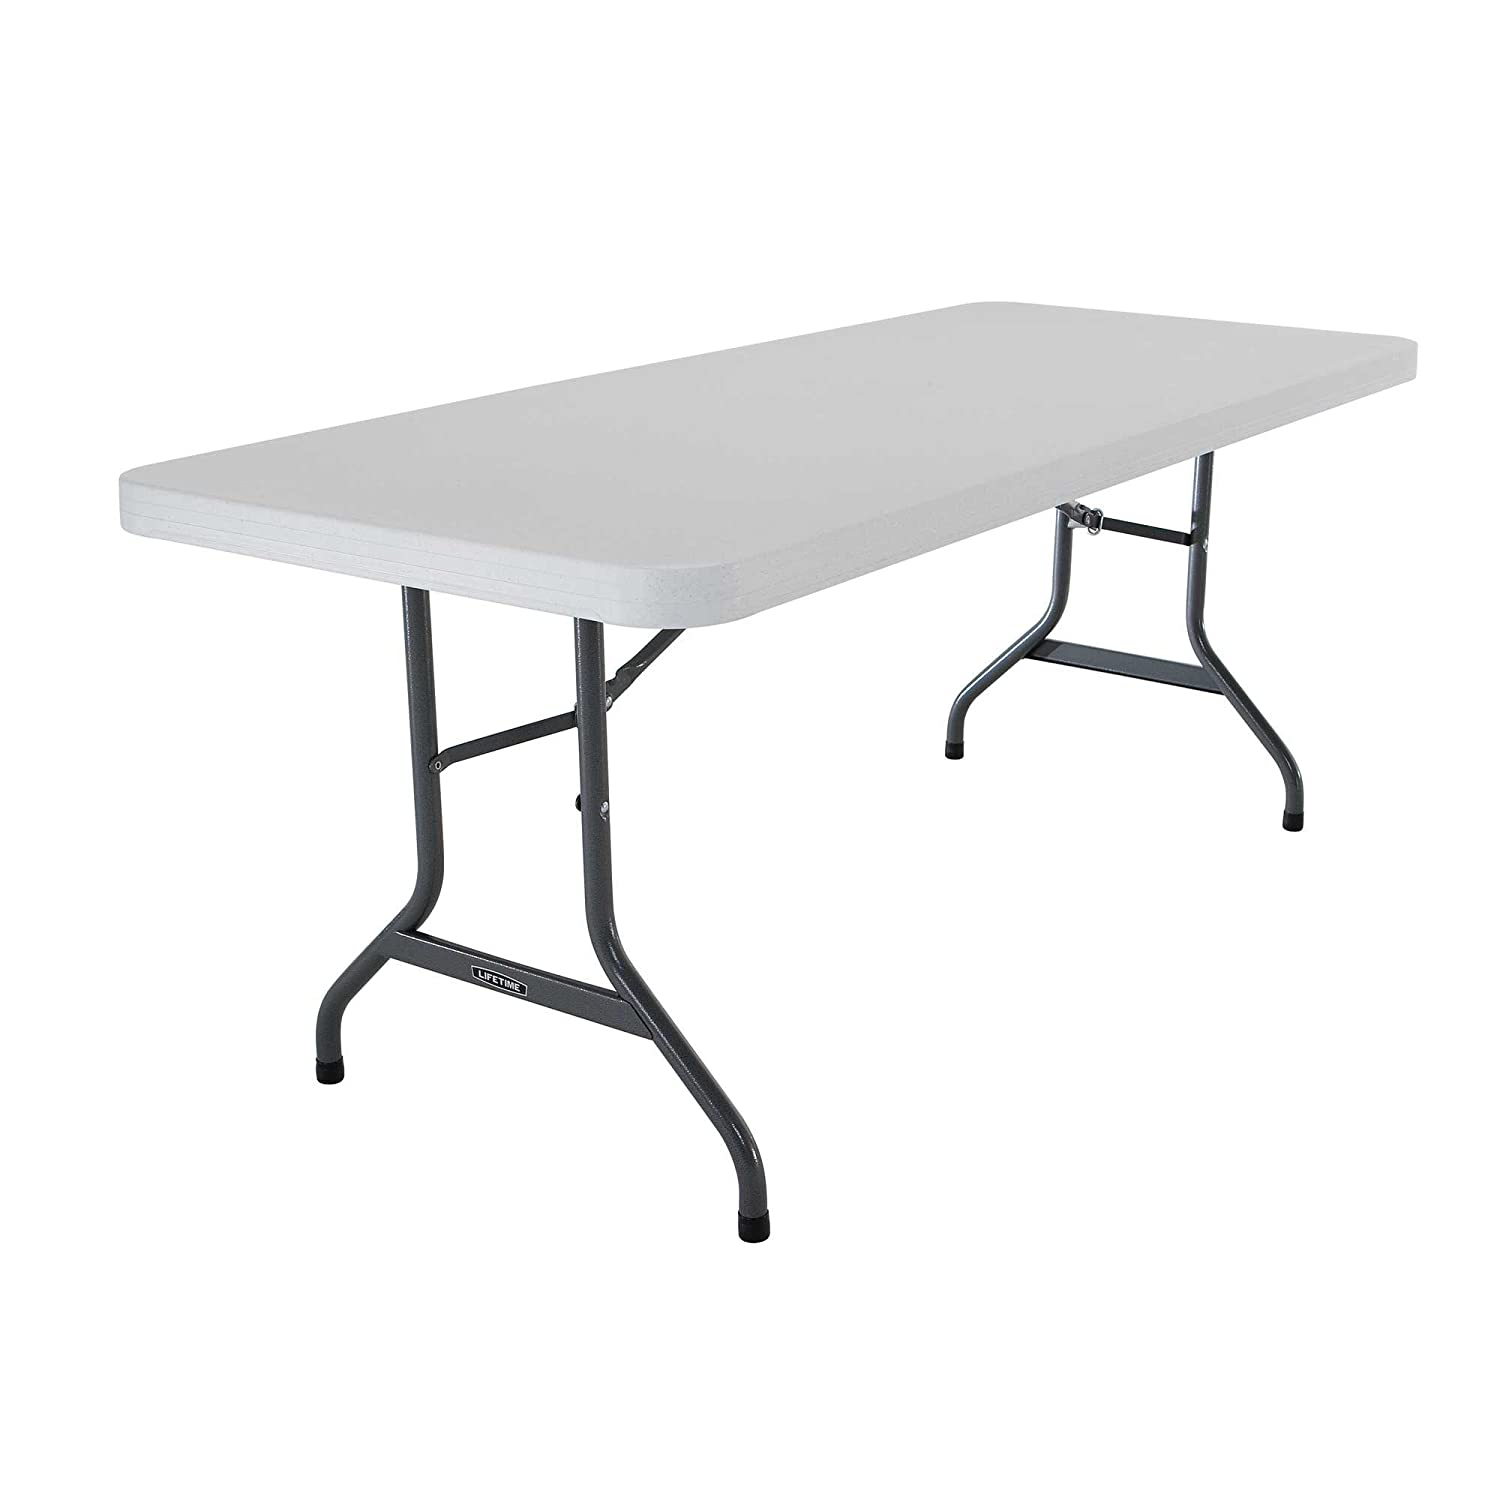 Six Foot Folding Table.Lifetime 22901 Folding Utility Table 6 Feet White Granite